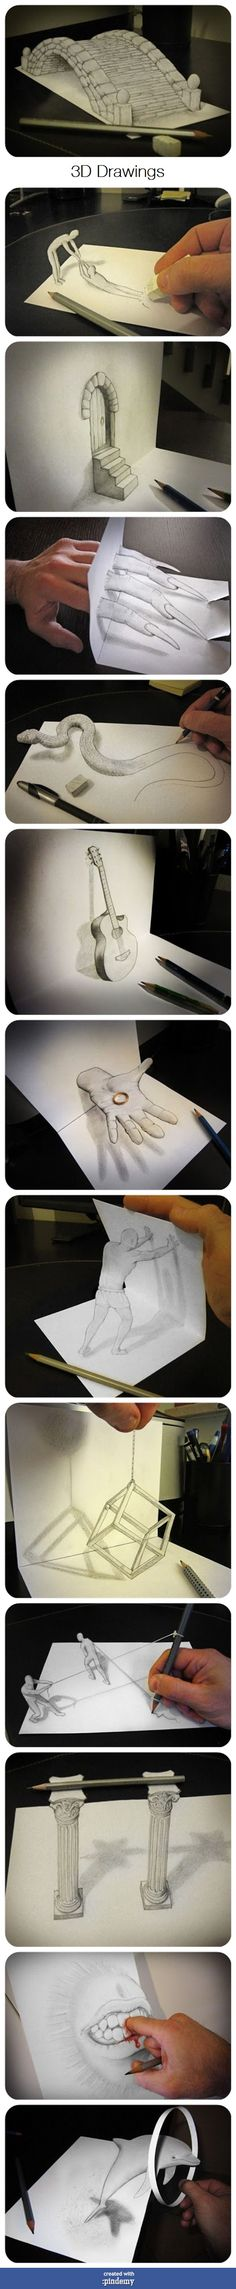 MIND BLOWING~ HOW DO THEY DO THIS    3D Drawings via pindemy.com